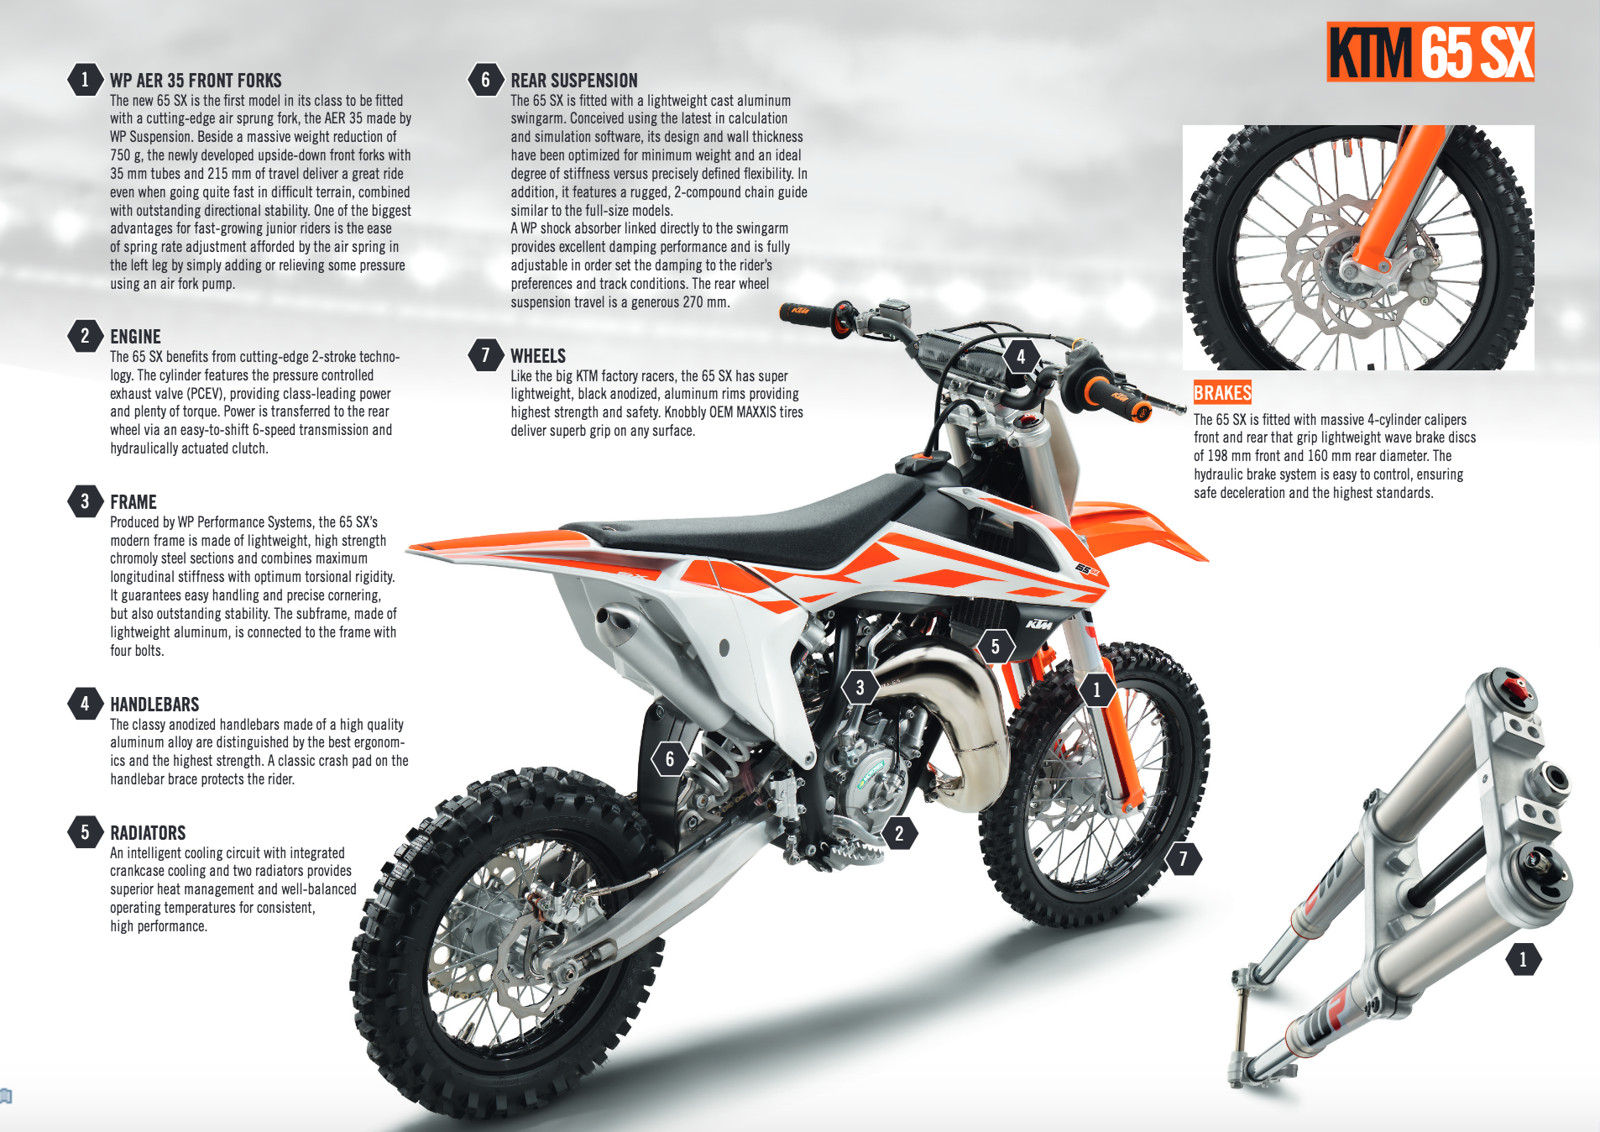 KTM 65 Sx Wiring Diagram Library. 2017 KTM 65 Sx First Look 50. KTM. KTM 50 Dirt Bike Diagram At Scoala.co